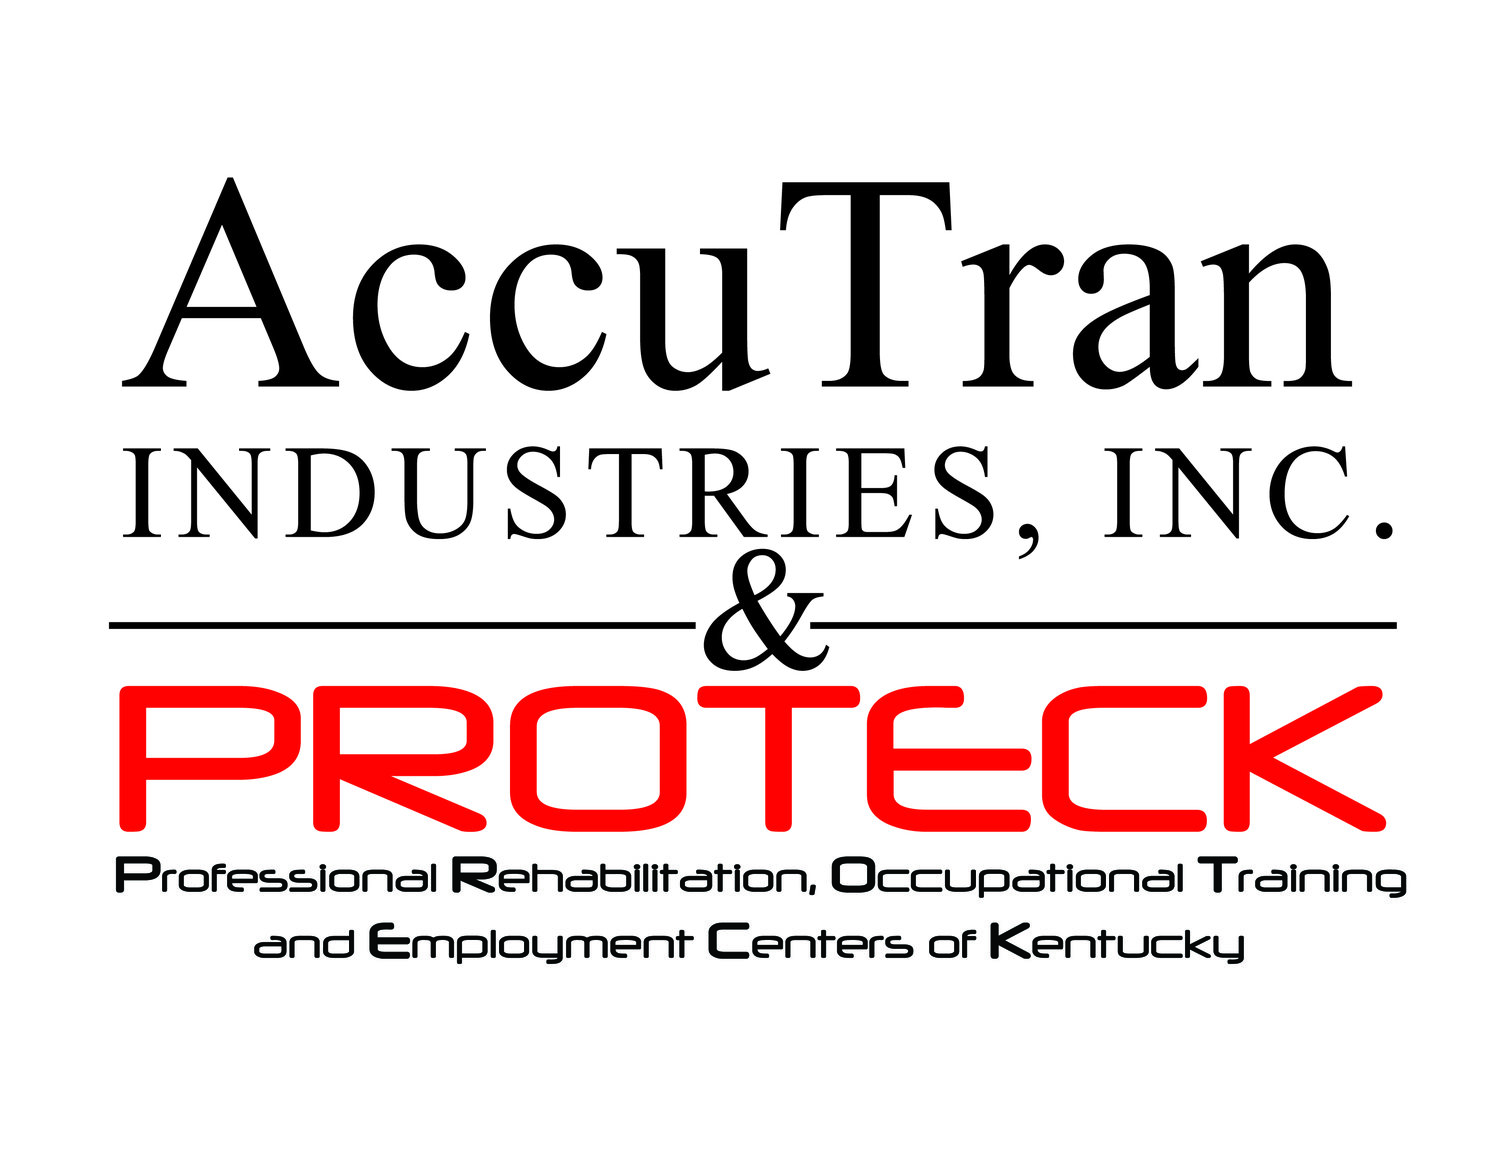 Accu Tran Industries, Inc. & Proteck